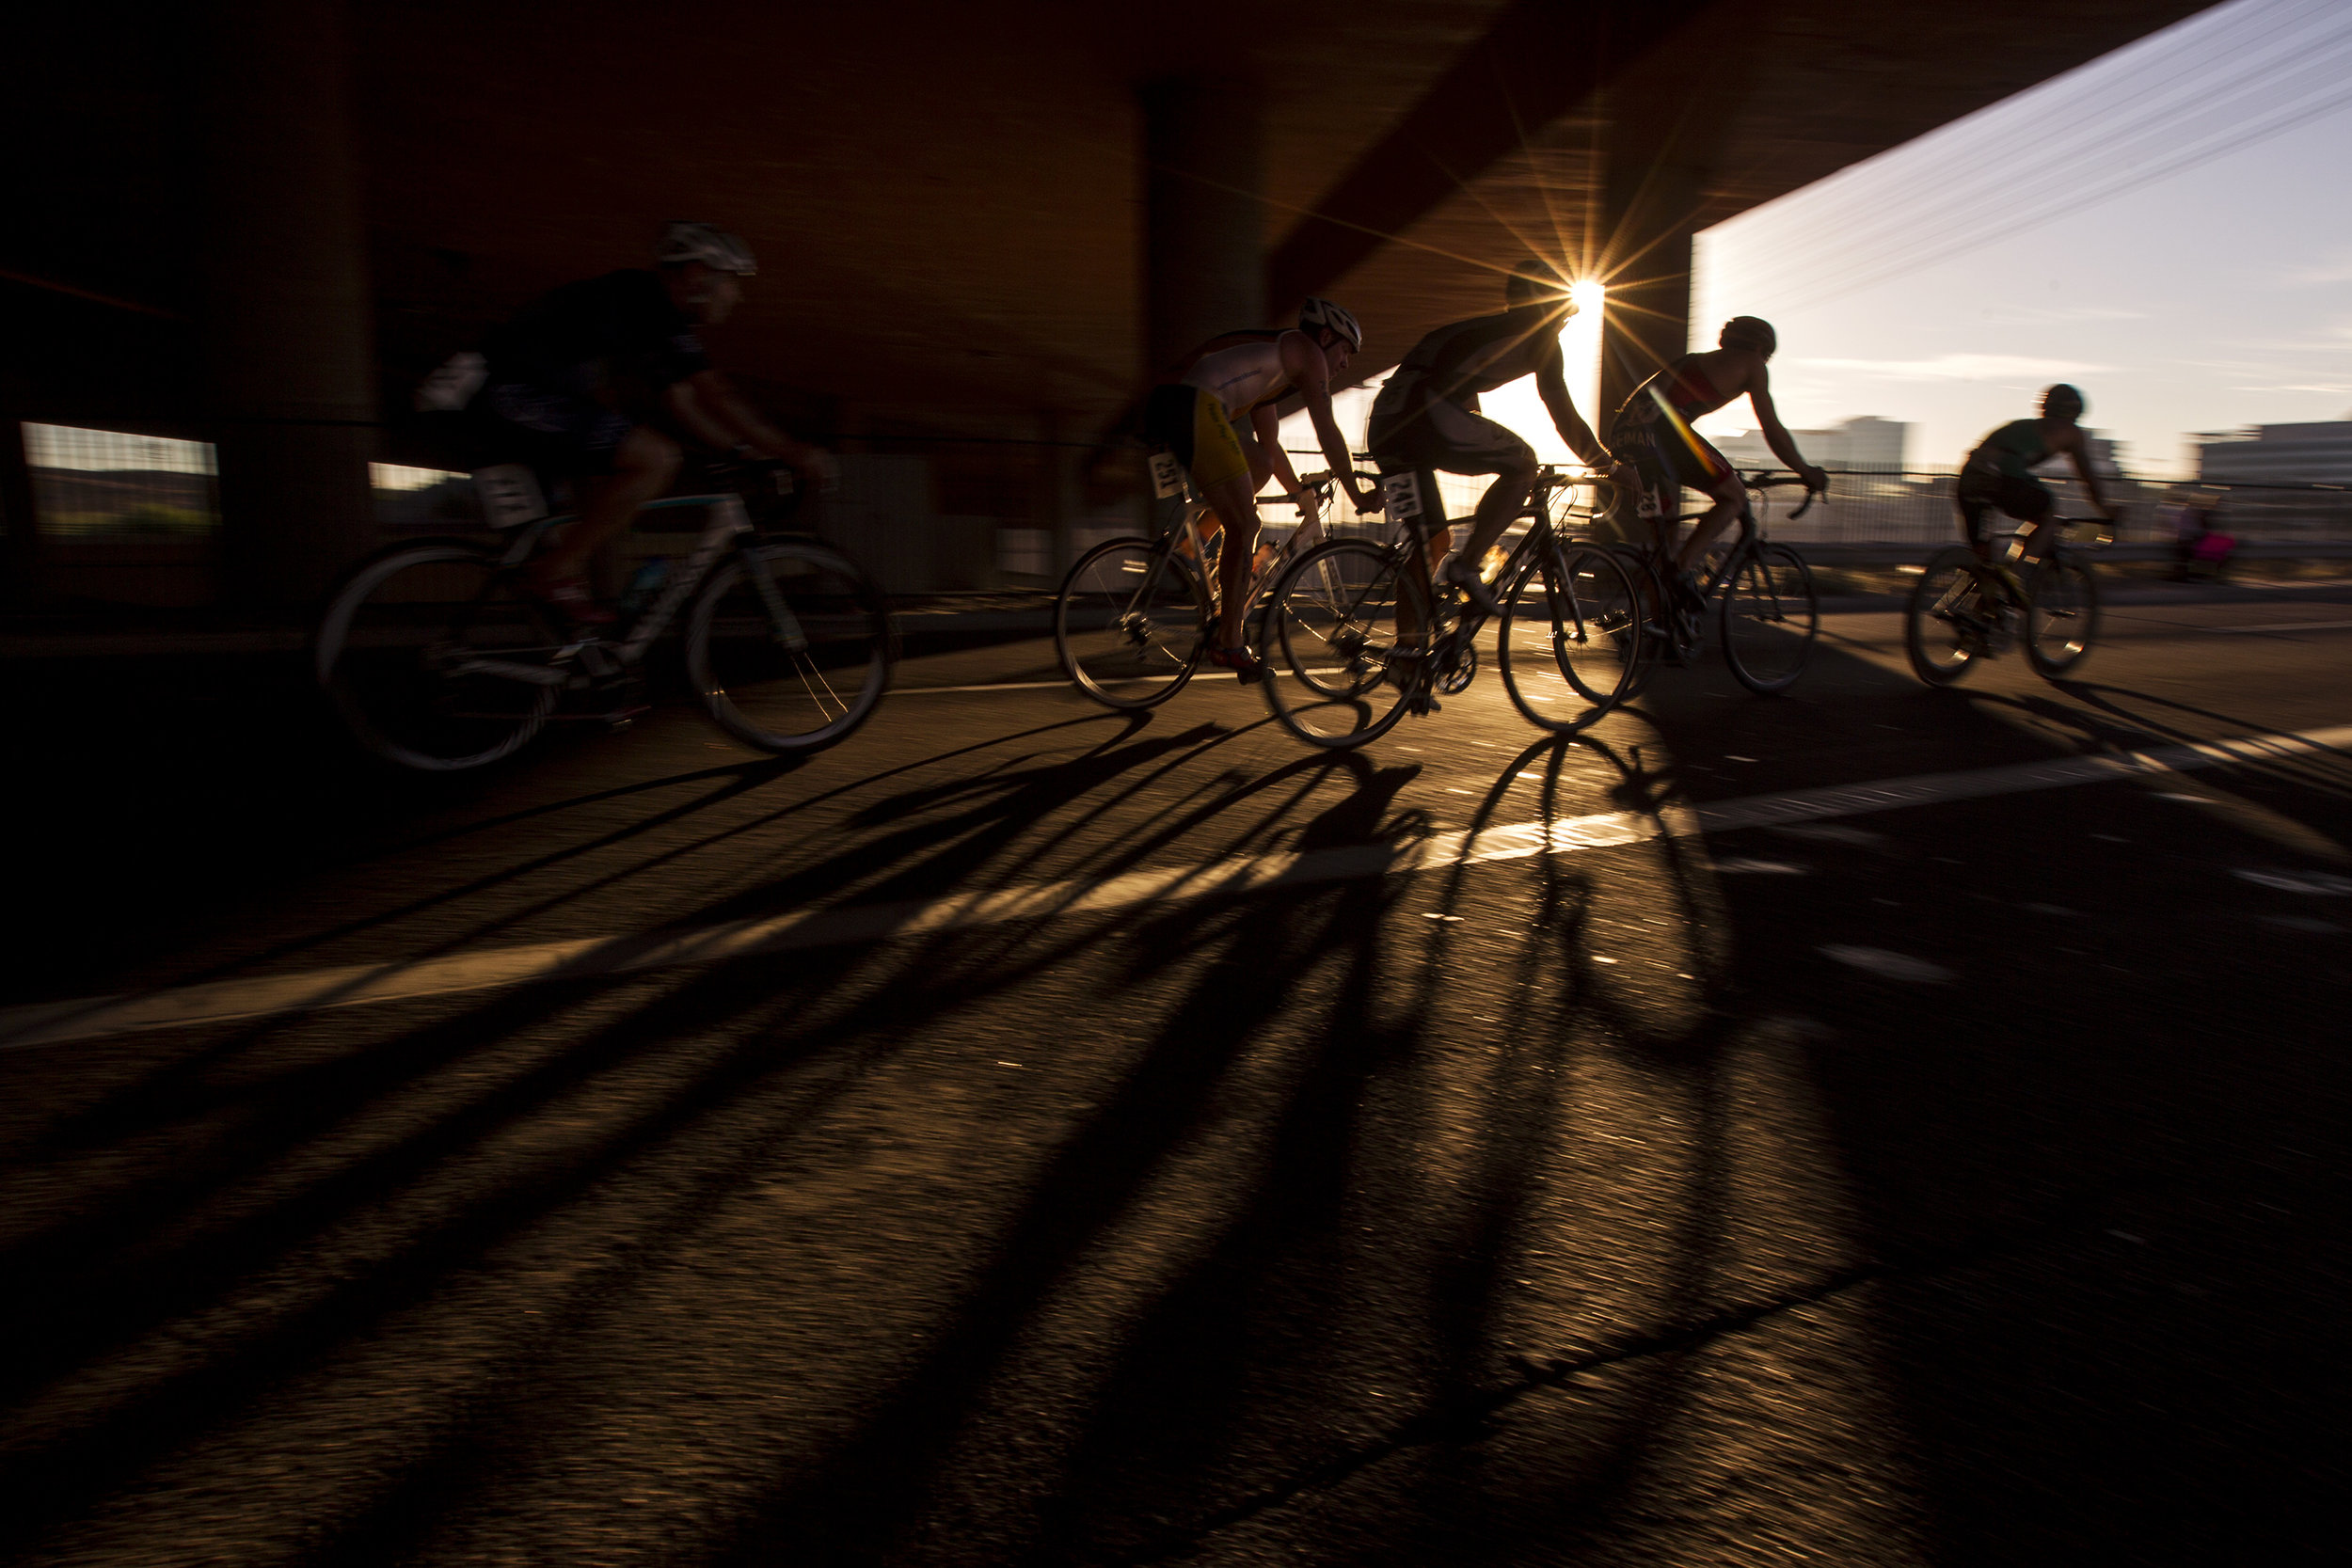 Cyclists ride on the Mill Avenue Bridge during the Ignite the Fork Triathlon on Sunday, Nov. 5, 2017 at Tempe Town Lake in Tempe, Ariz.